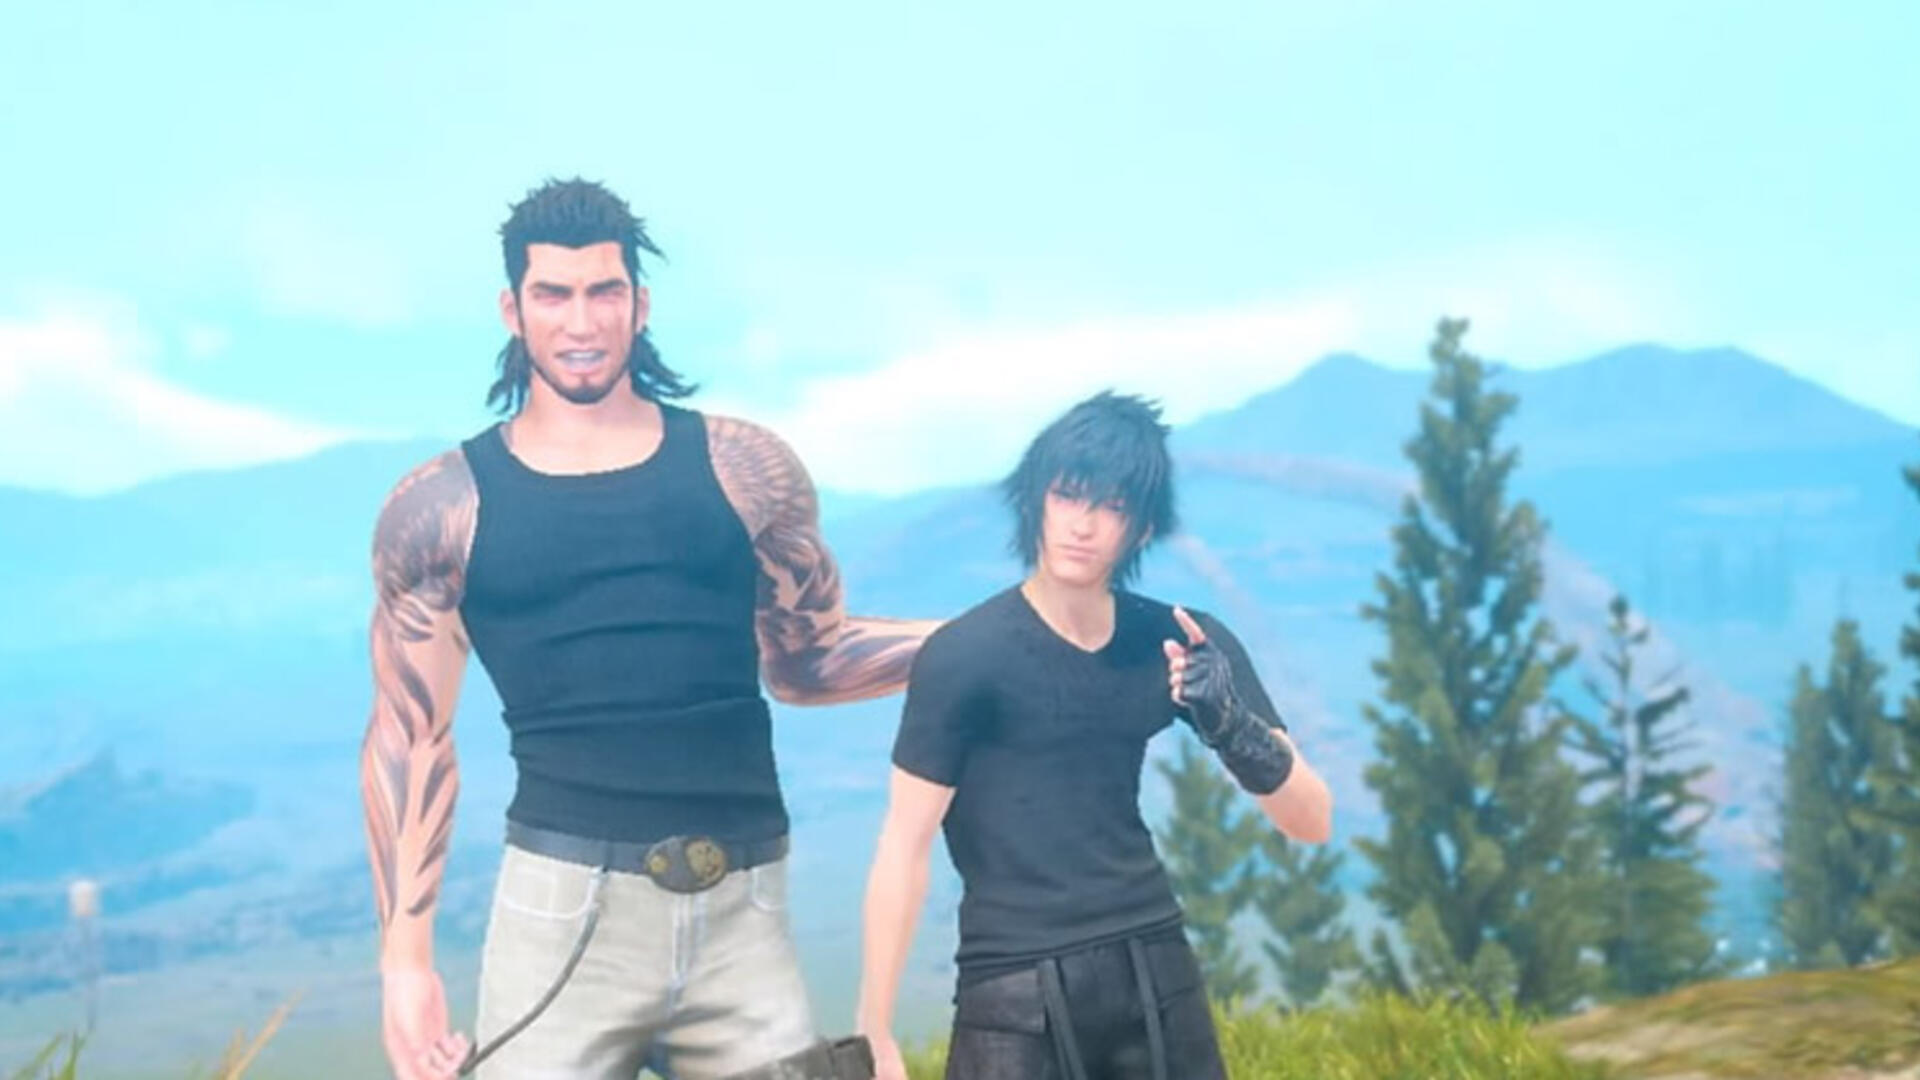 Final Fantasy XV's Next Patch Lets Players Freely Take Pictures and Selfies